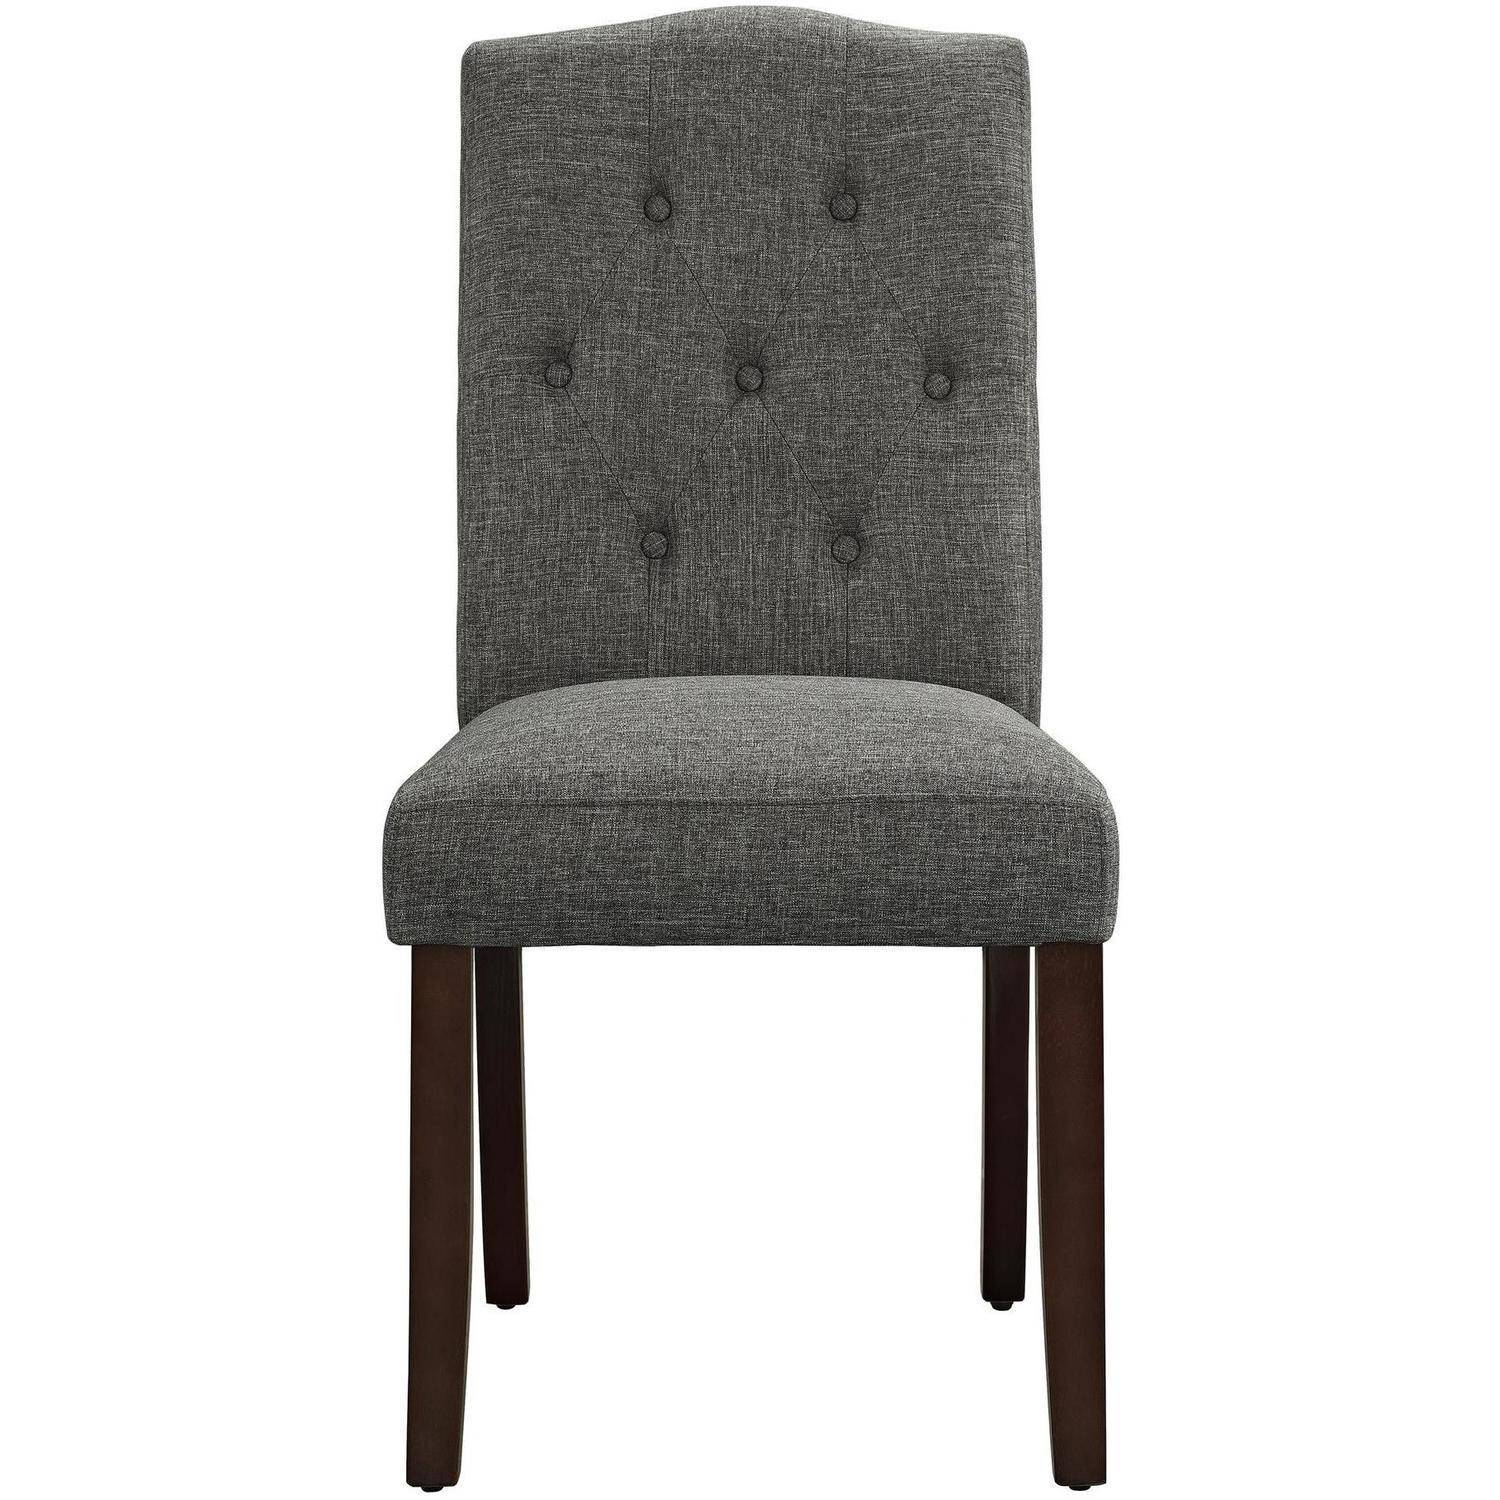 Dining room tufted dining chair upholstered side chairs for Upholstered dining chairs